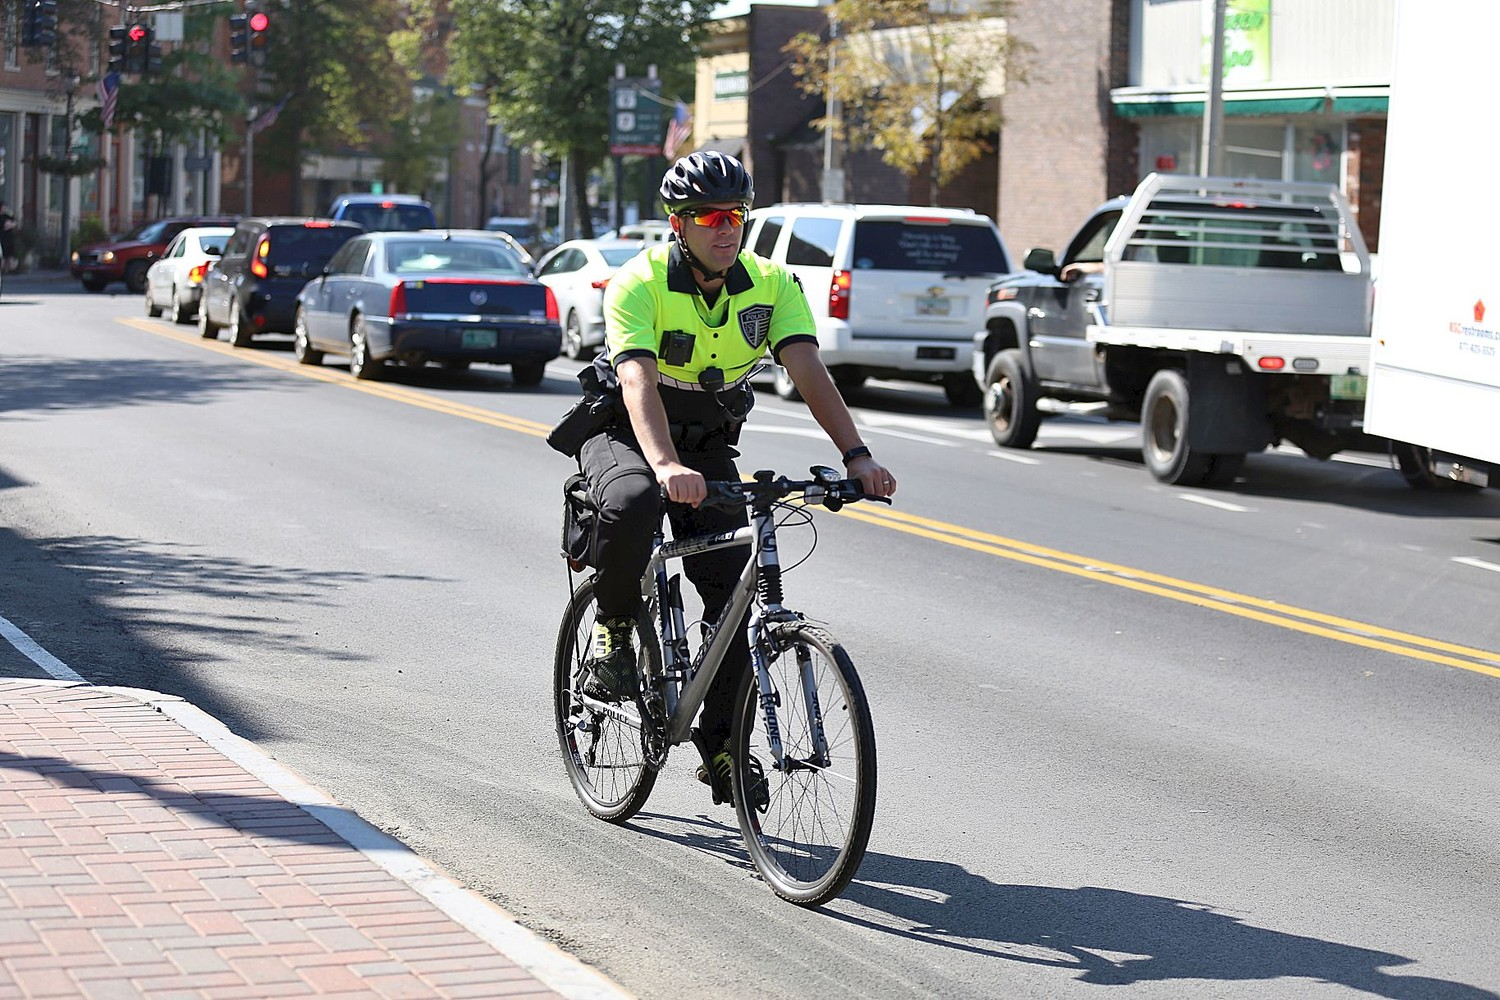 BPD Bicycle Patrol Unit allows police visibility, community interaction